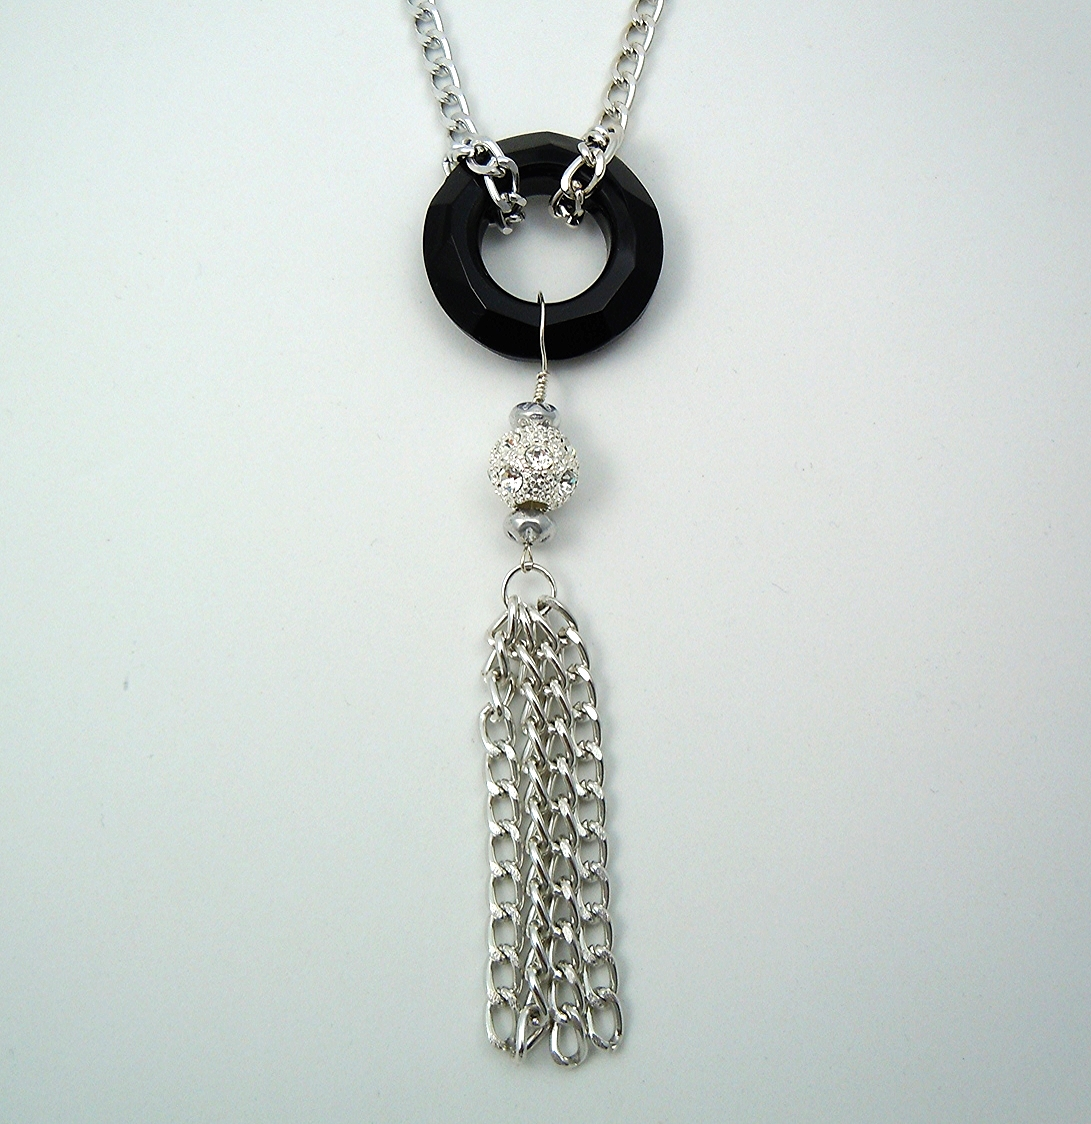 The silver version of my celestial crystal drop necklace